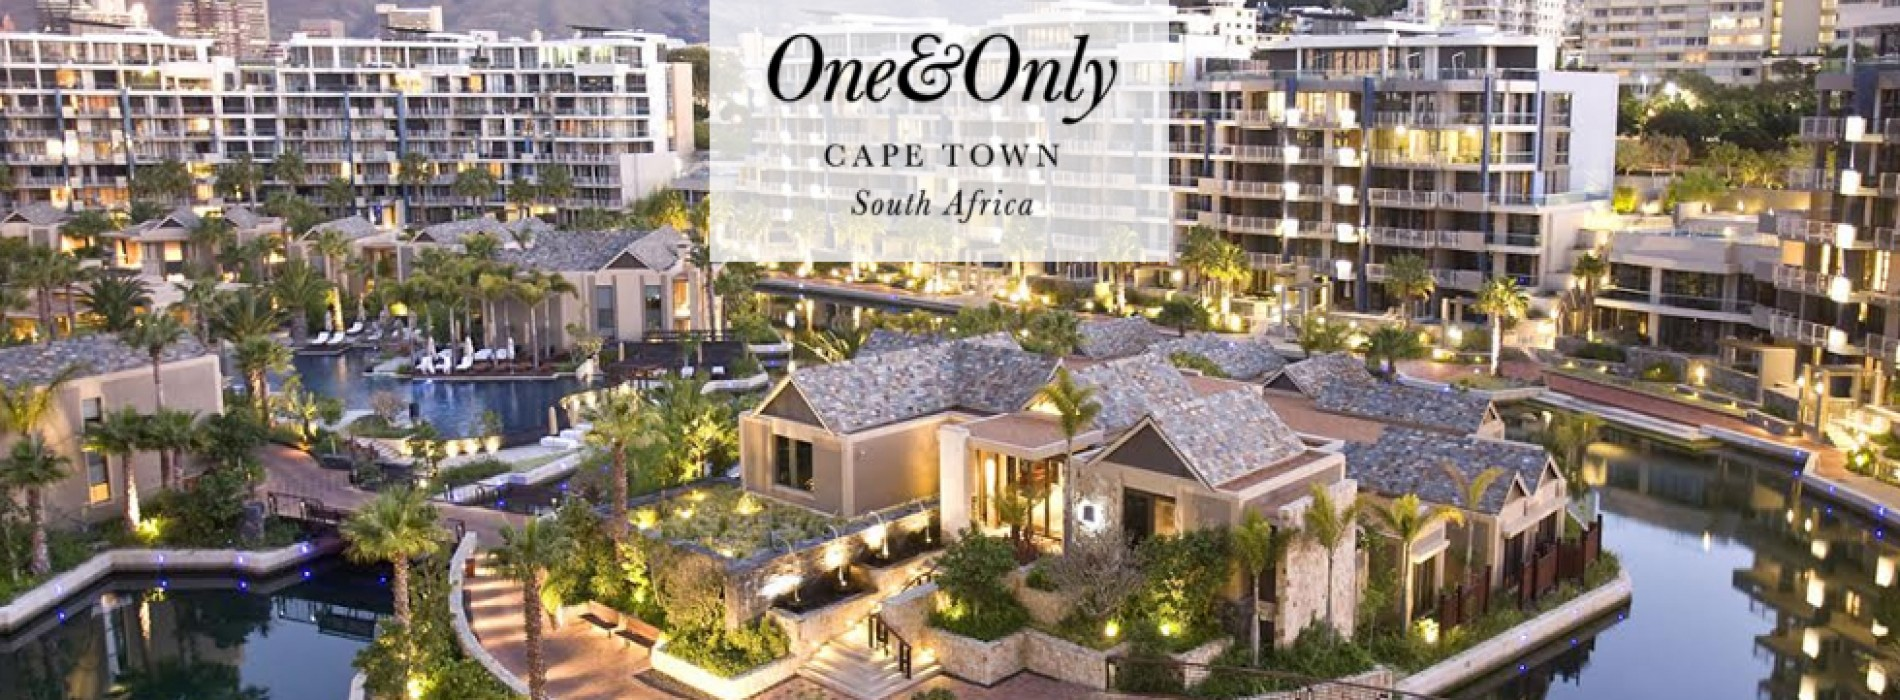 Indulge in Adventures and Excursions at One&Only Cape Town, South Africa